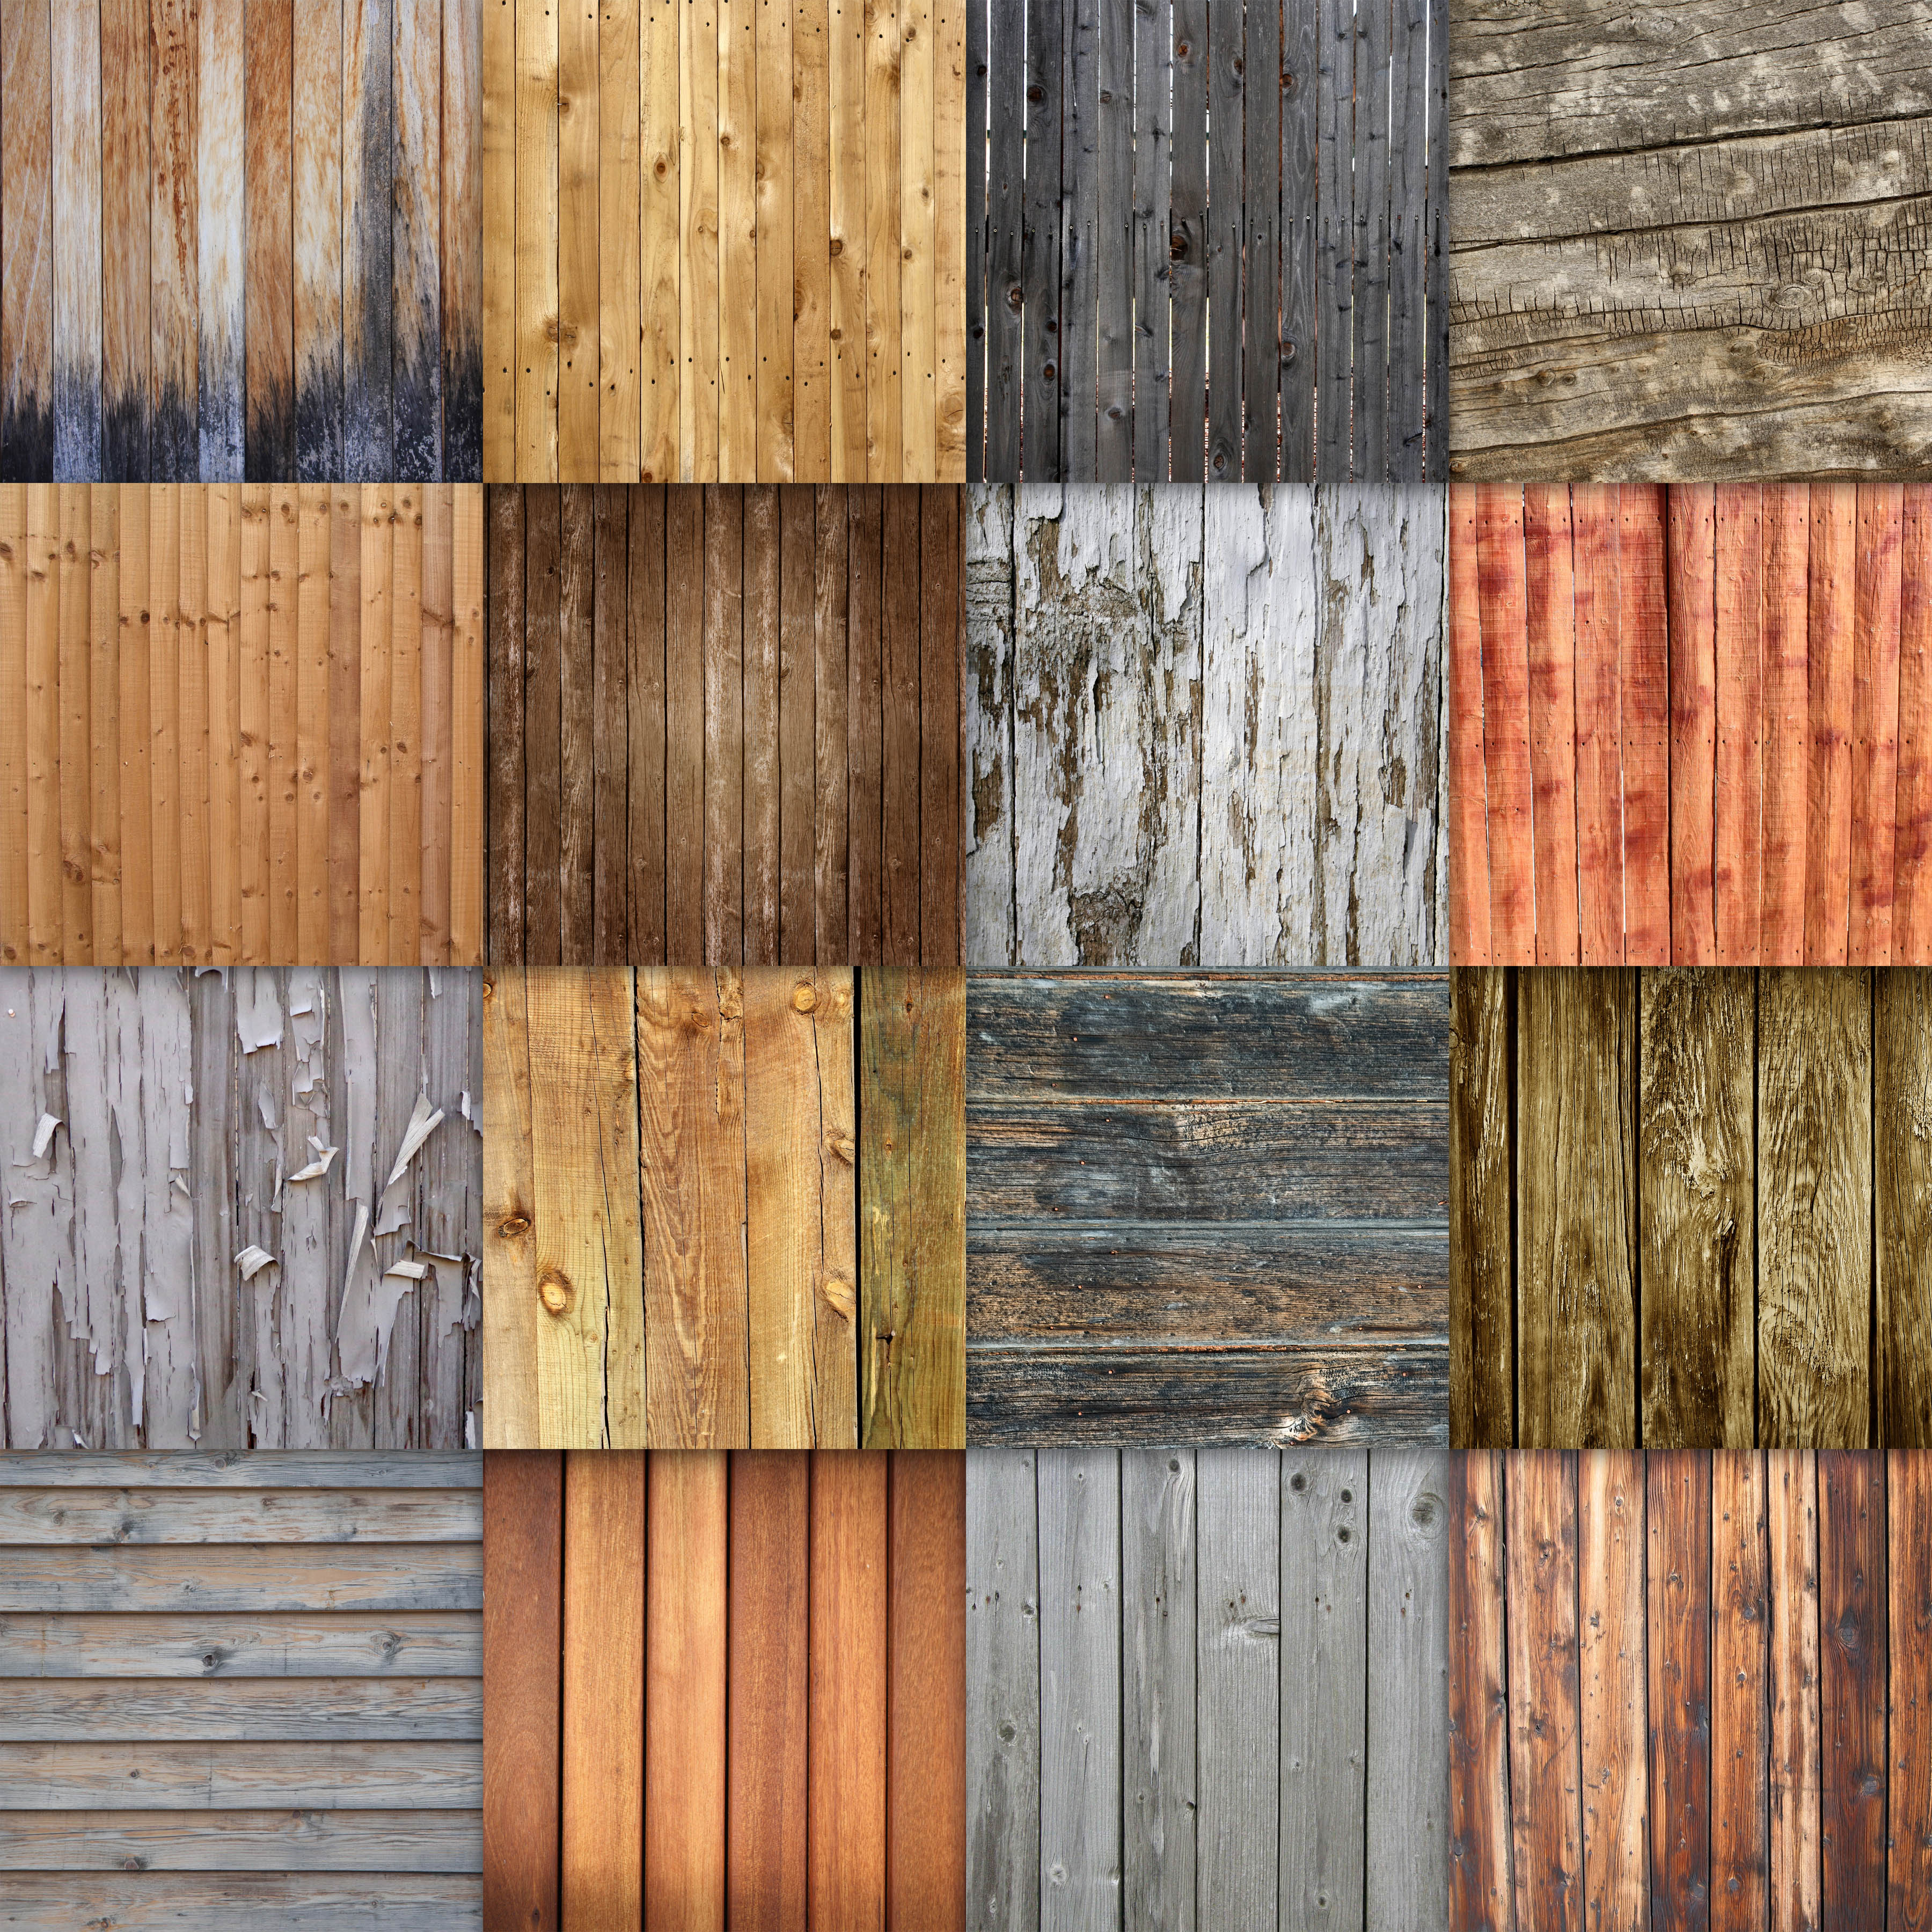 Wood Fence Textures Digital Paper Graphic Backgrounds By oldmarketdesigns - Image 2